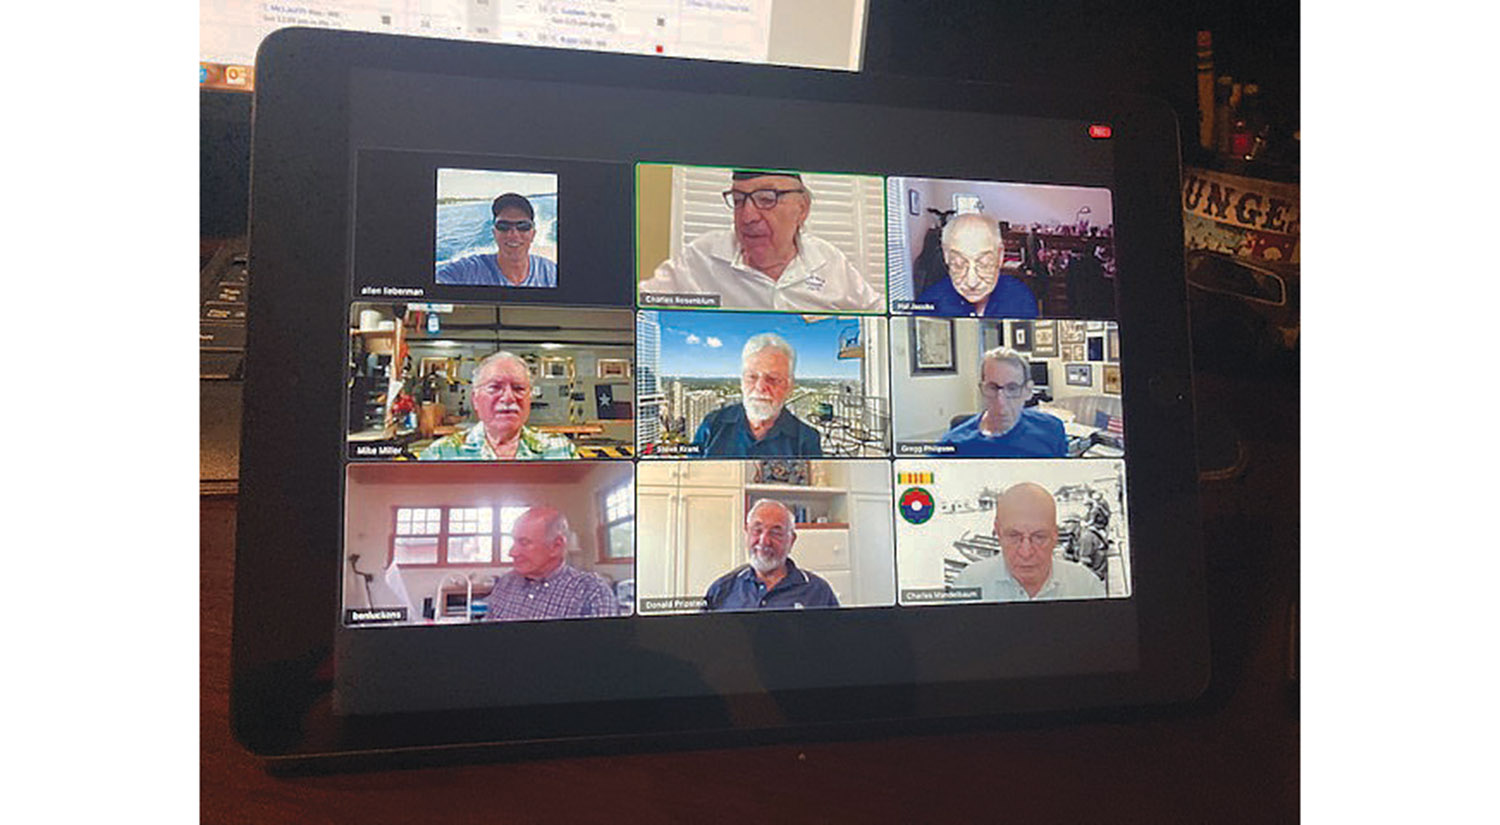 A group of 9 elderly men hold an online meeting on a video conference call.